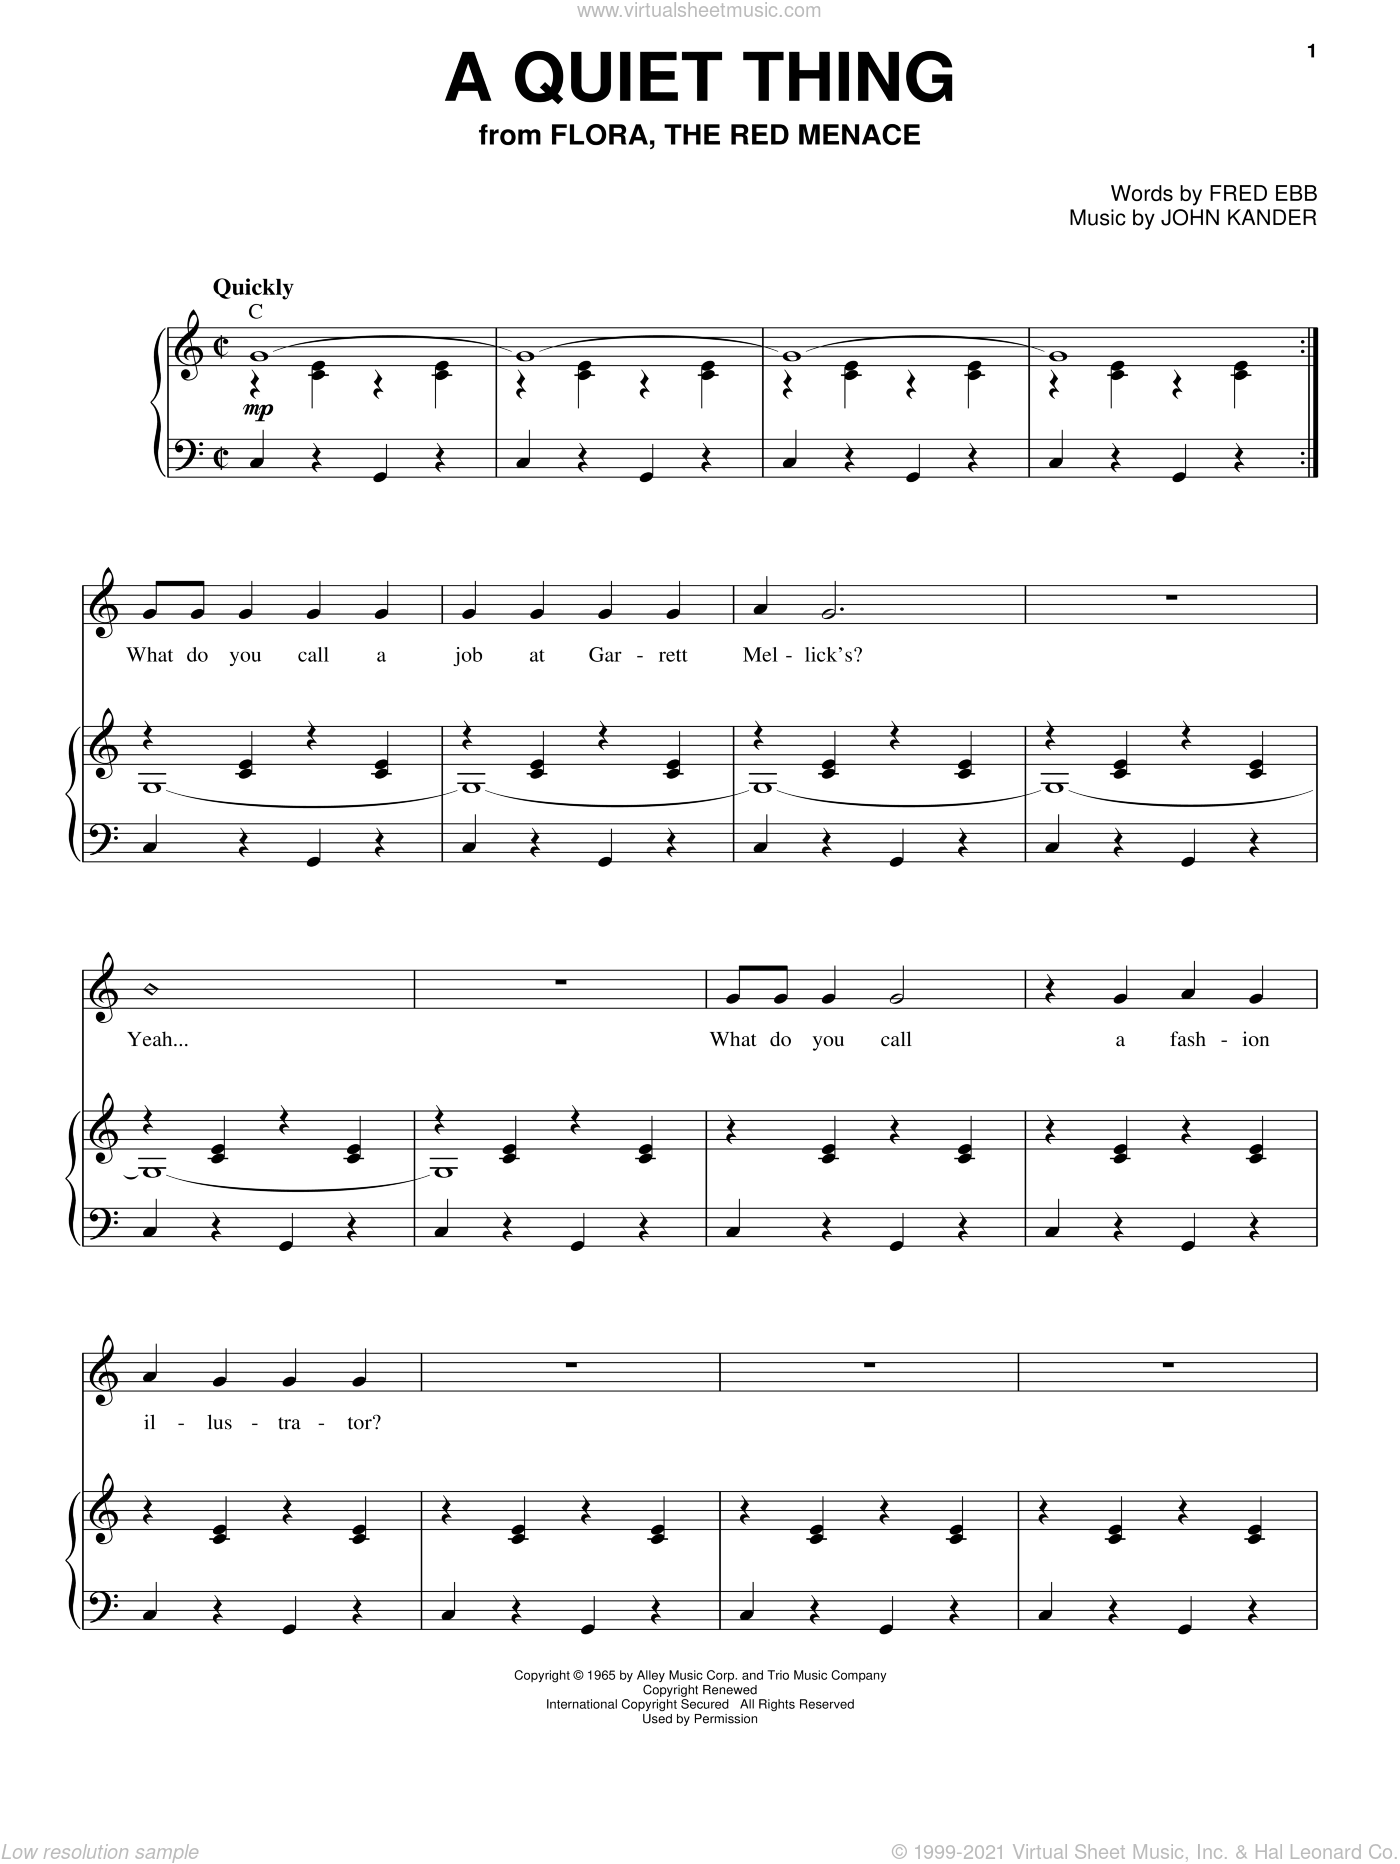 A Quiet Thing sheet music for voice and piano by John Kander